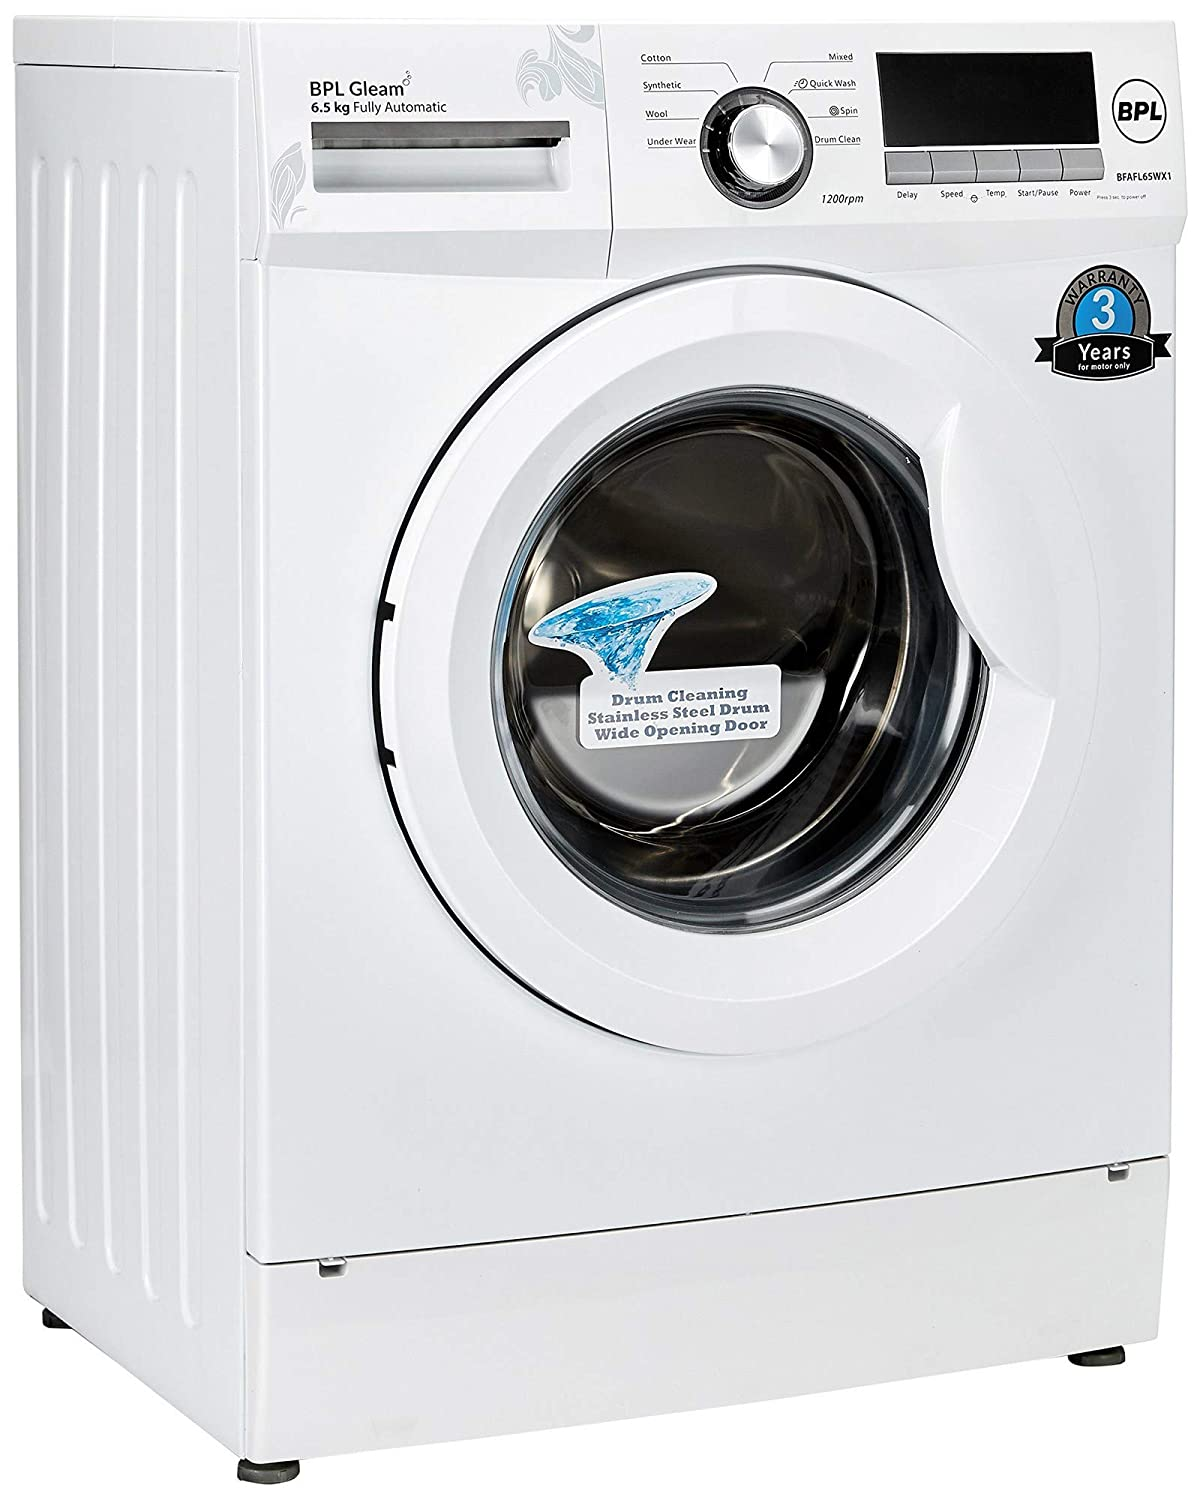 Bpl Washing Machine Wiring Diagram Great Design Of Front Loader 6 5 Kg Automatic Loading Buy Rh Amazon In Kenmore